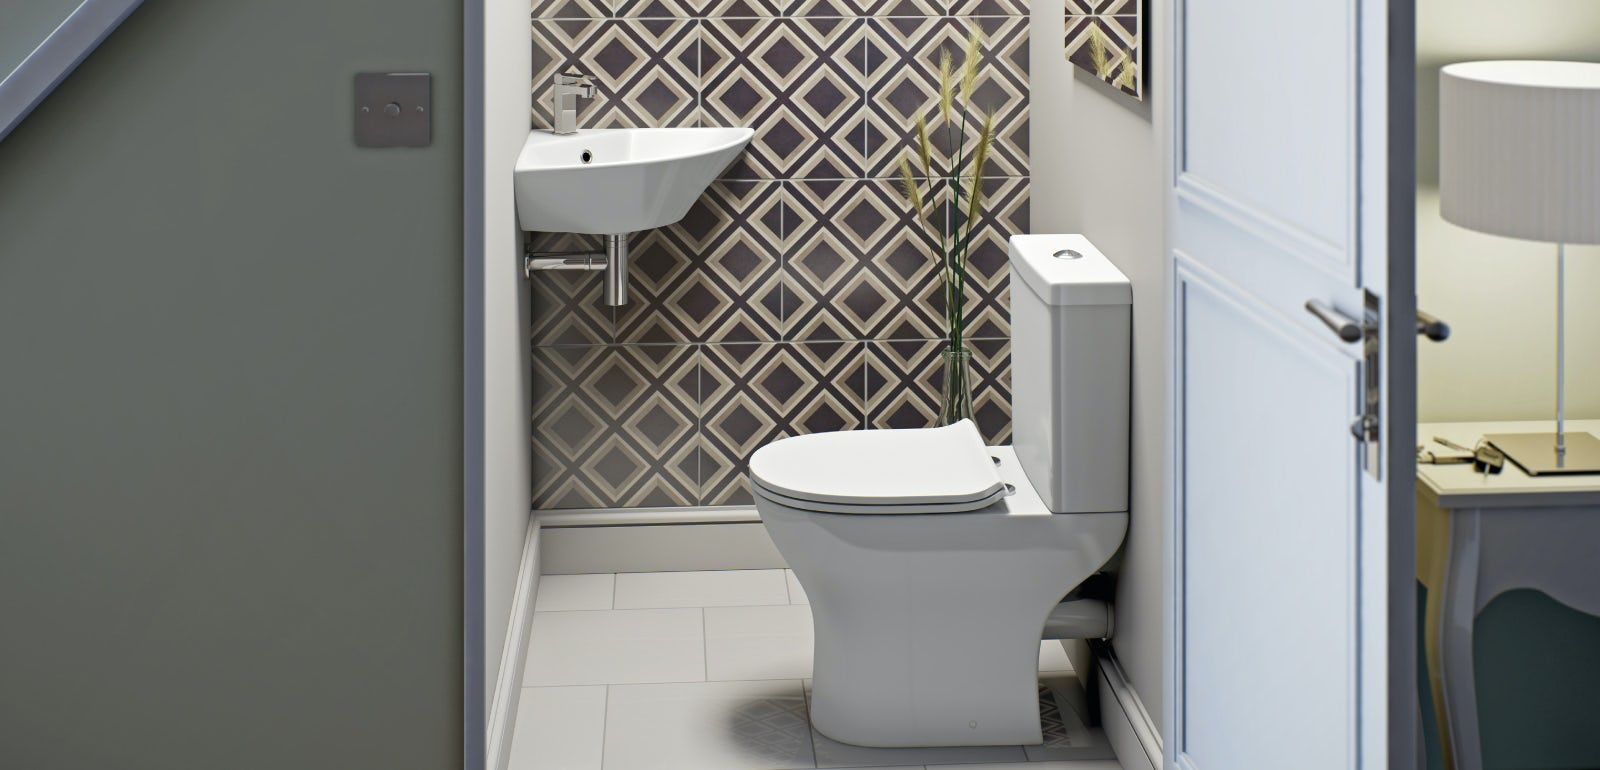 Small Spaces: Get your cloakroom ready for Christmas guests